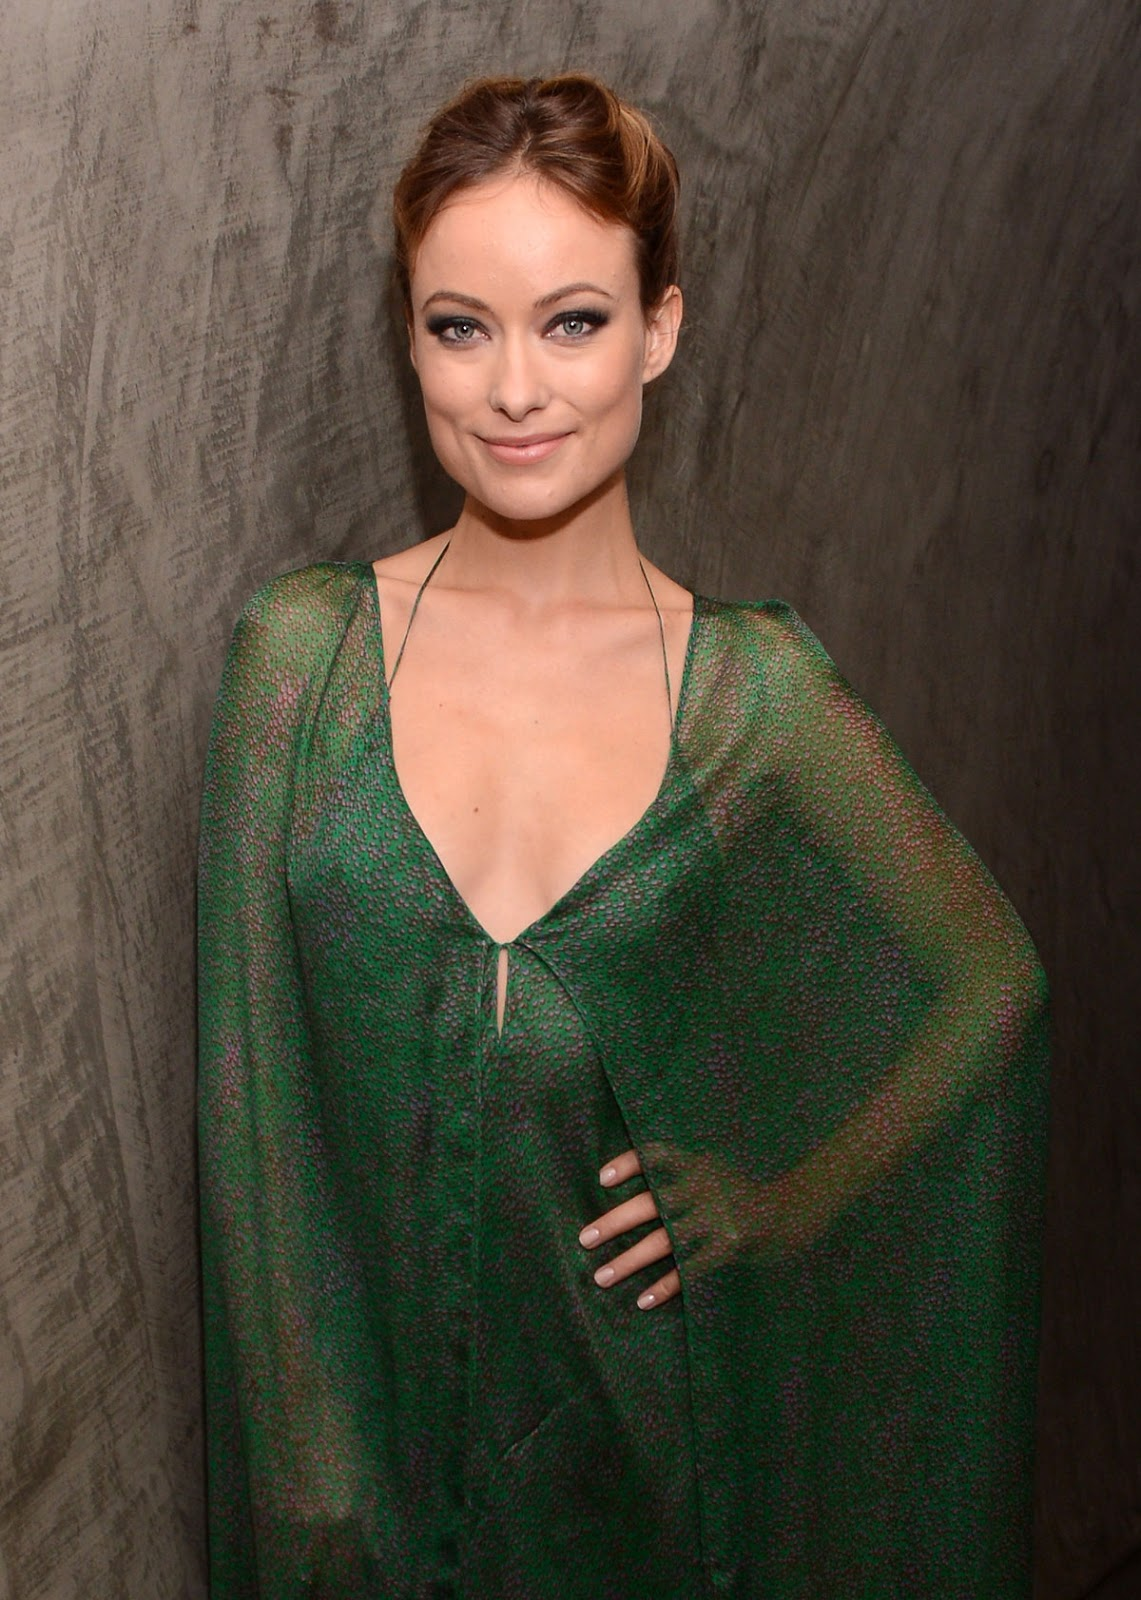 Olivia Wilde Profile And Latest Pictures 2013